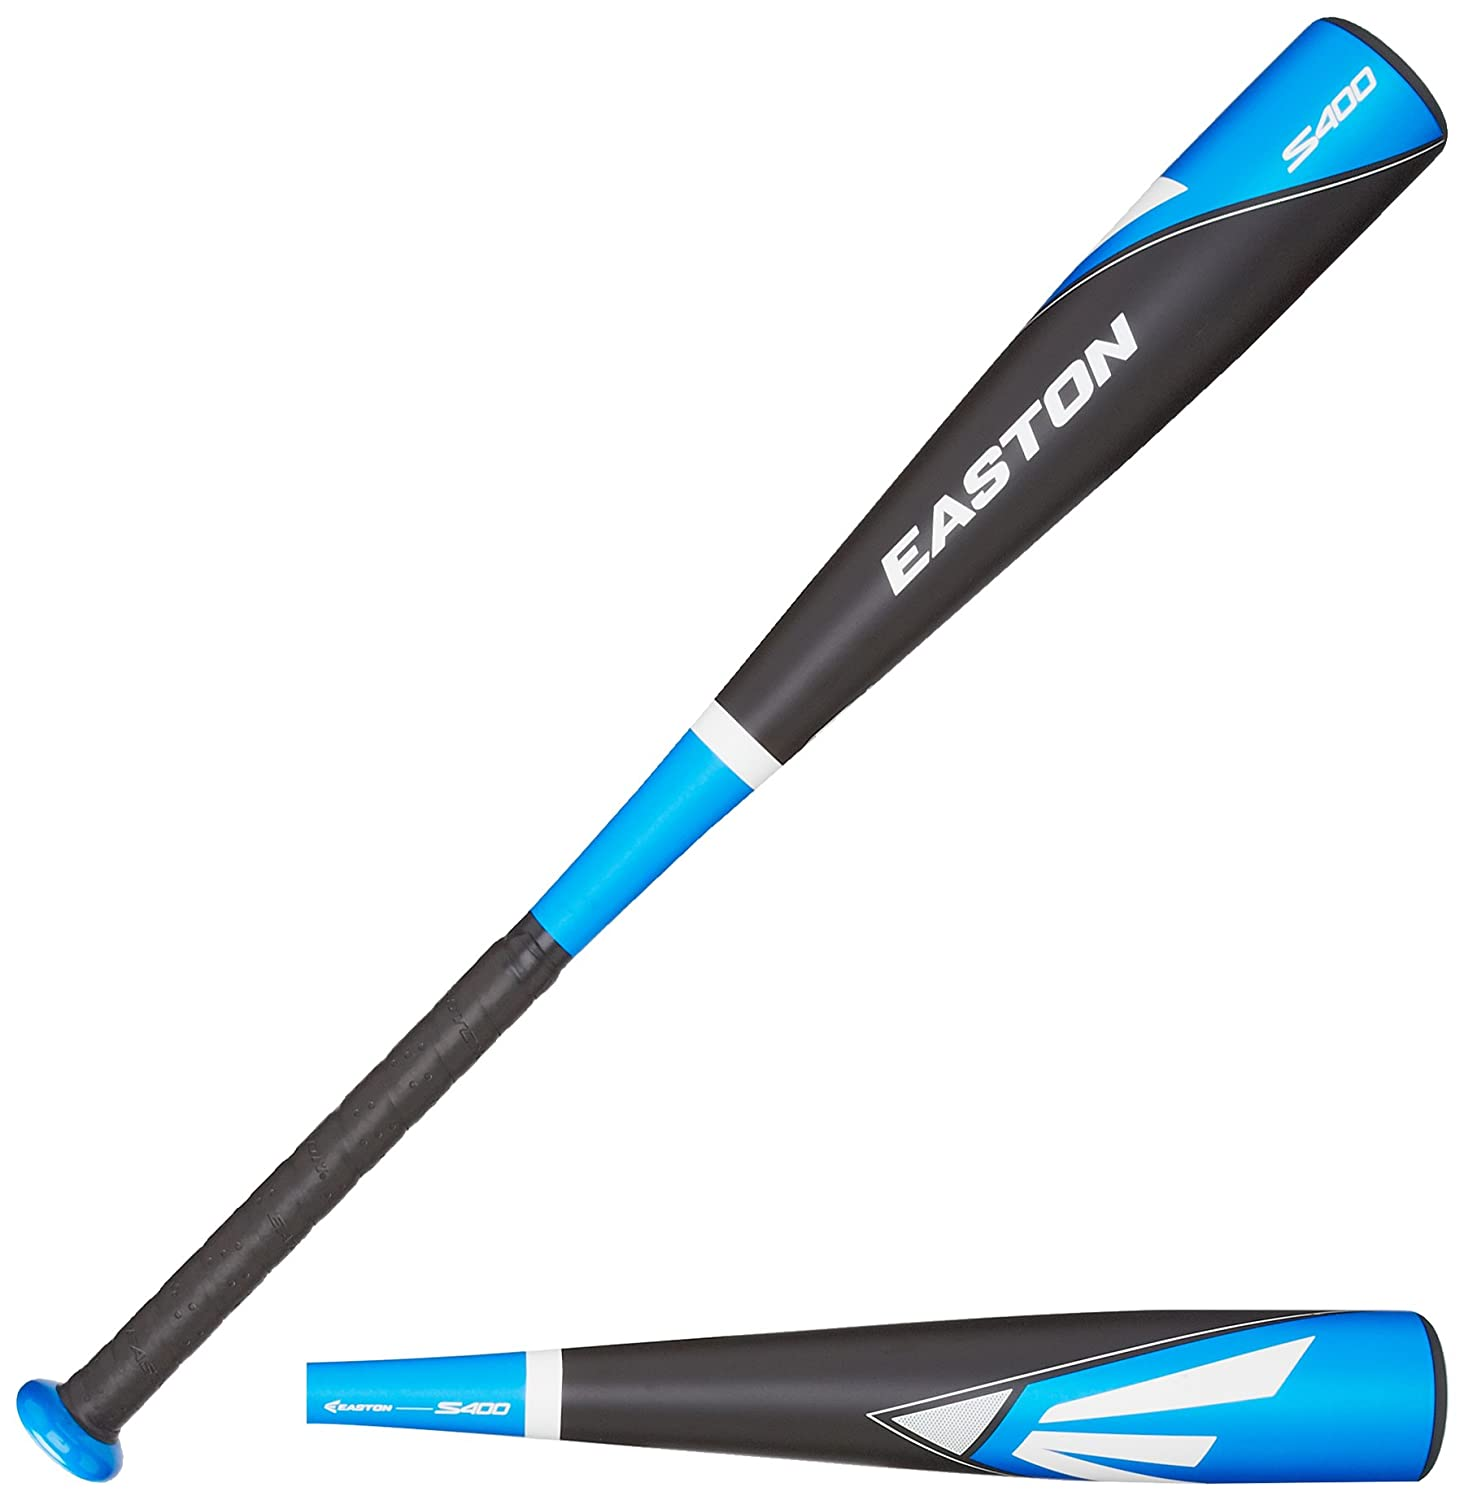 Easton 2014 S400 SL14S400 Baseball Bat